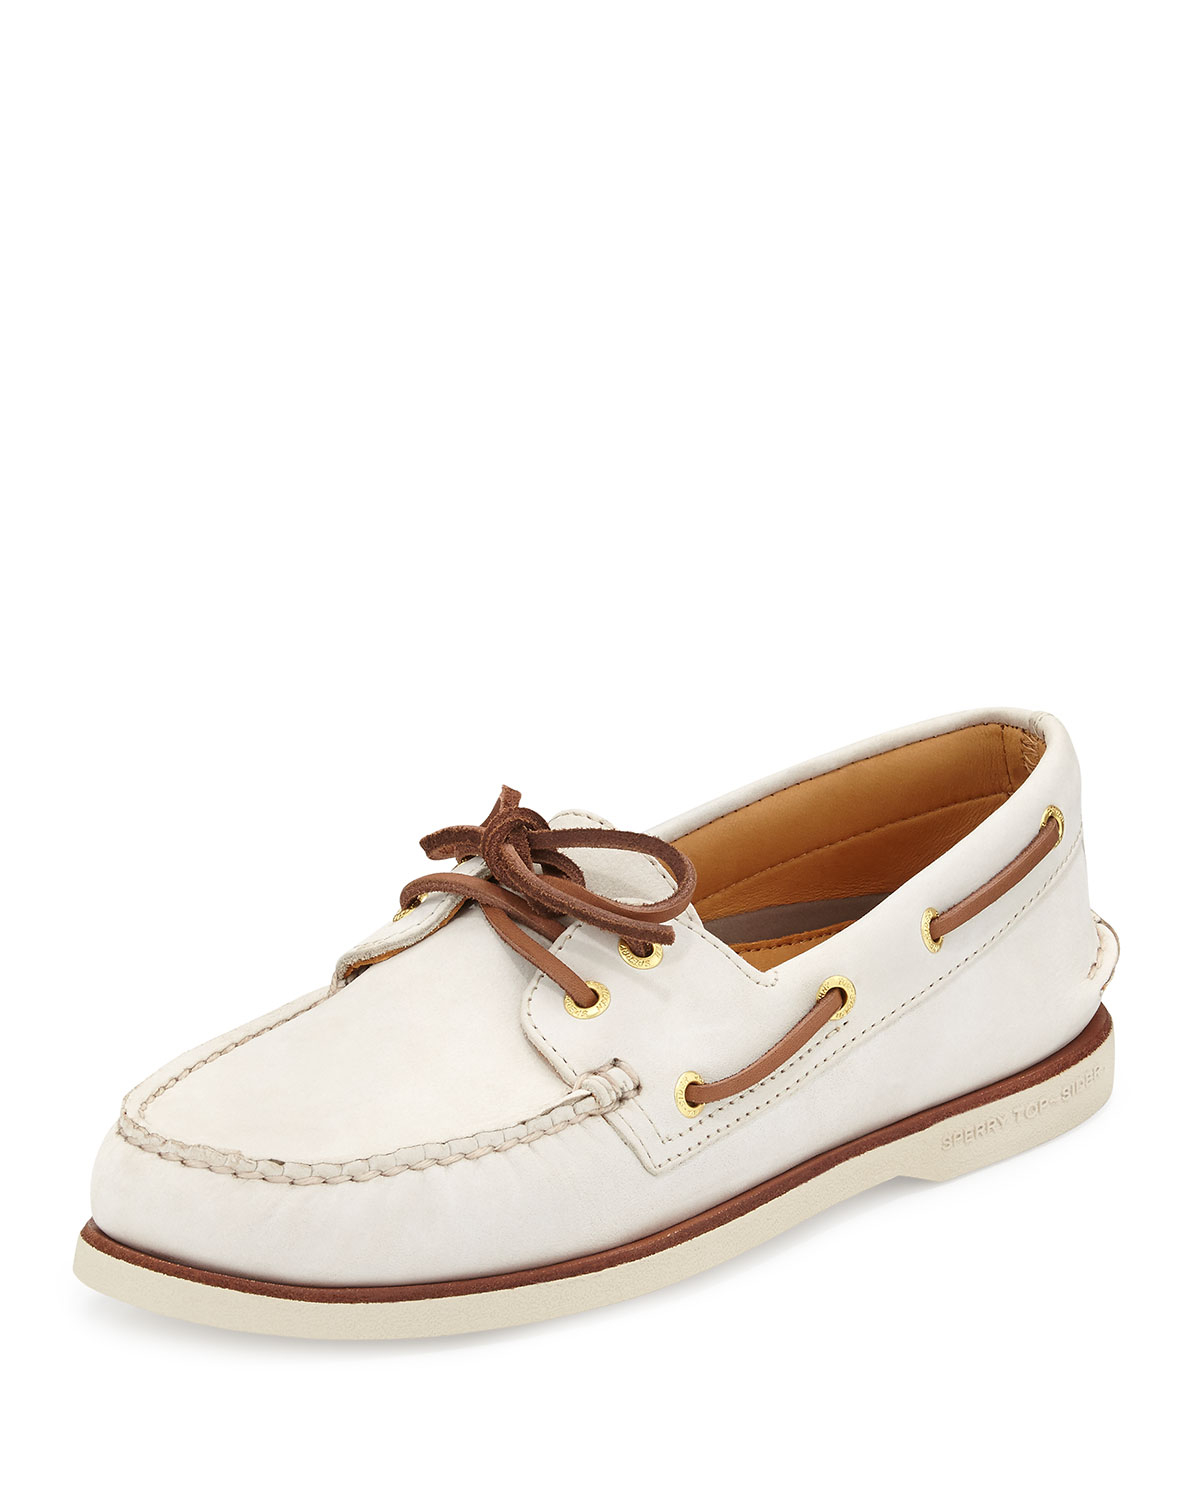 Sperry Men's Gold Cup Authentic Original Boat Shoe RWLt3ilk